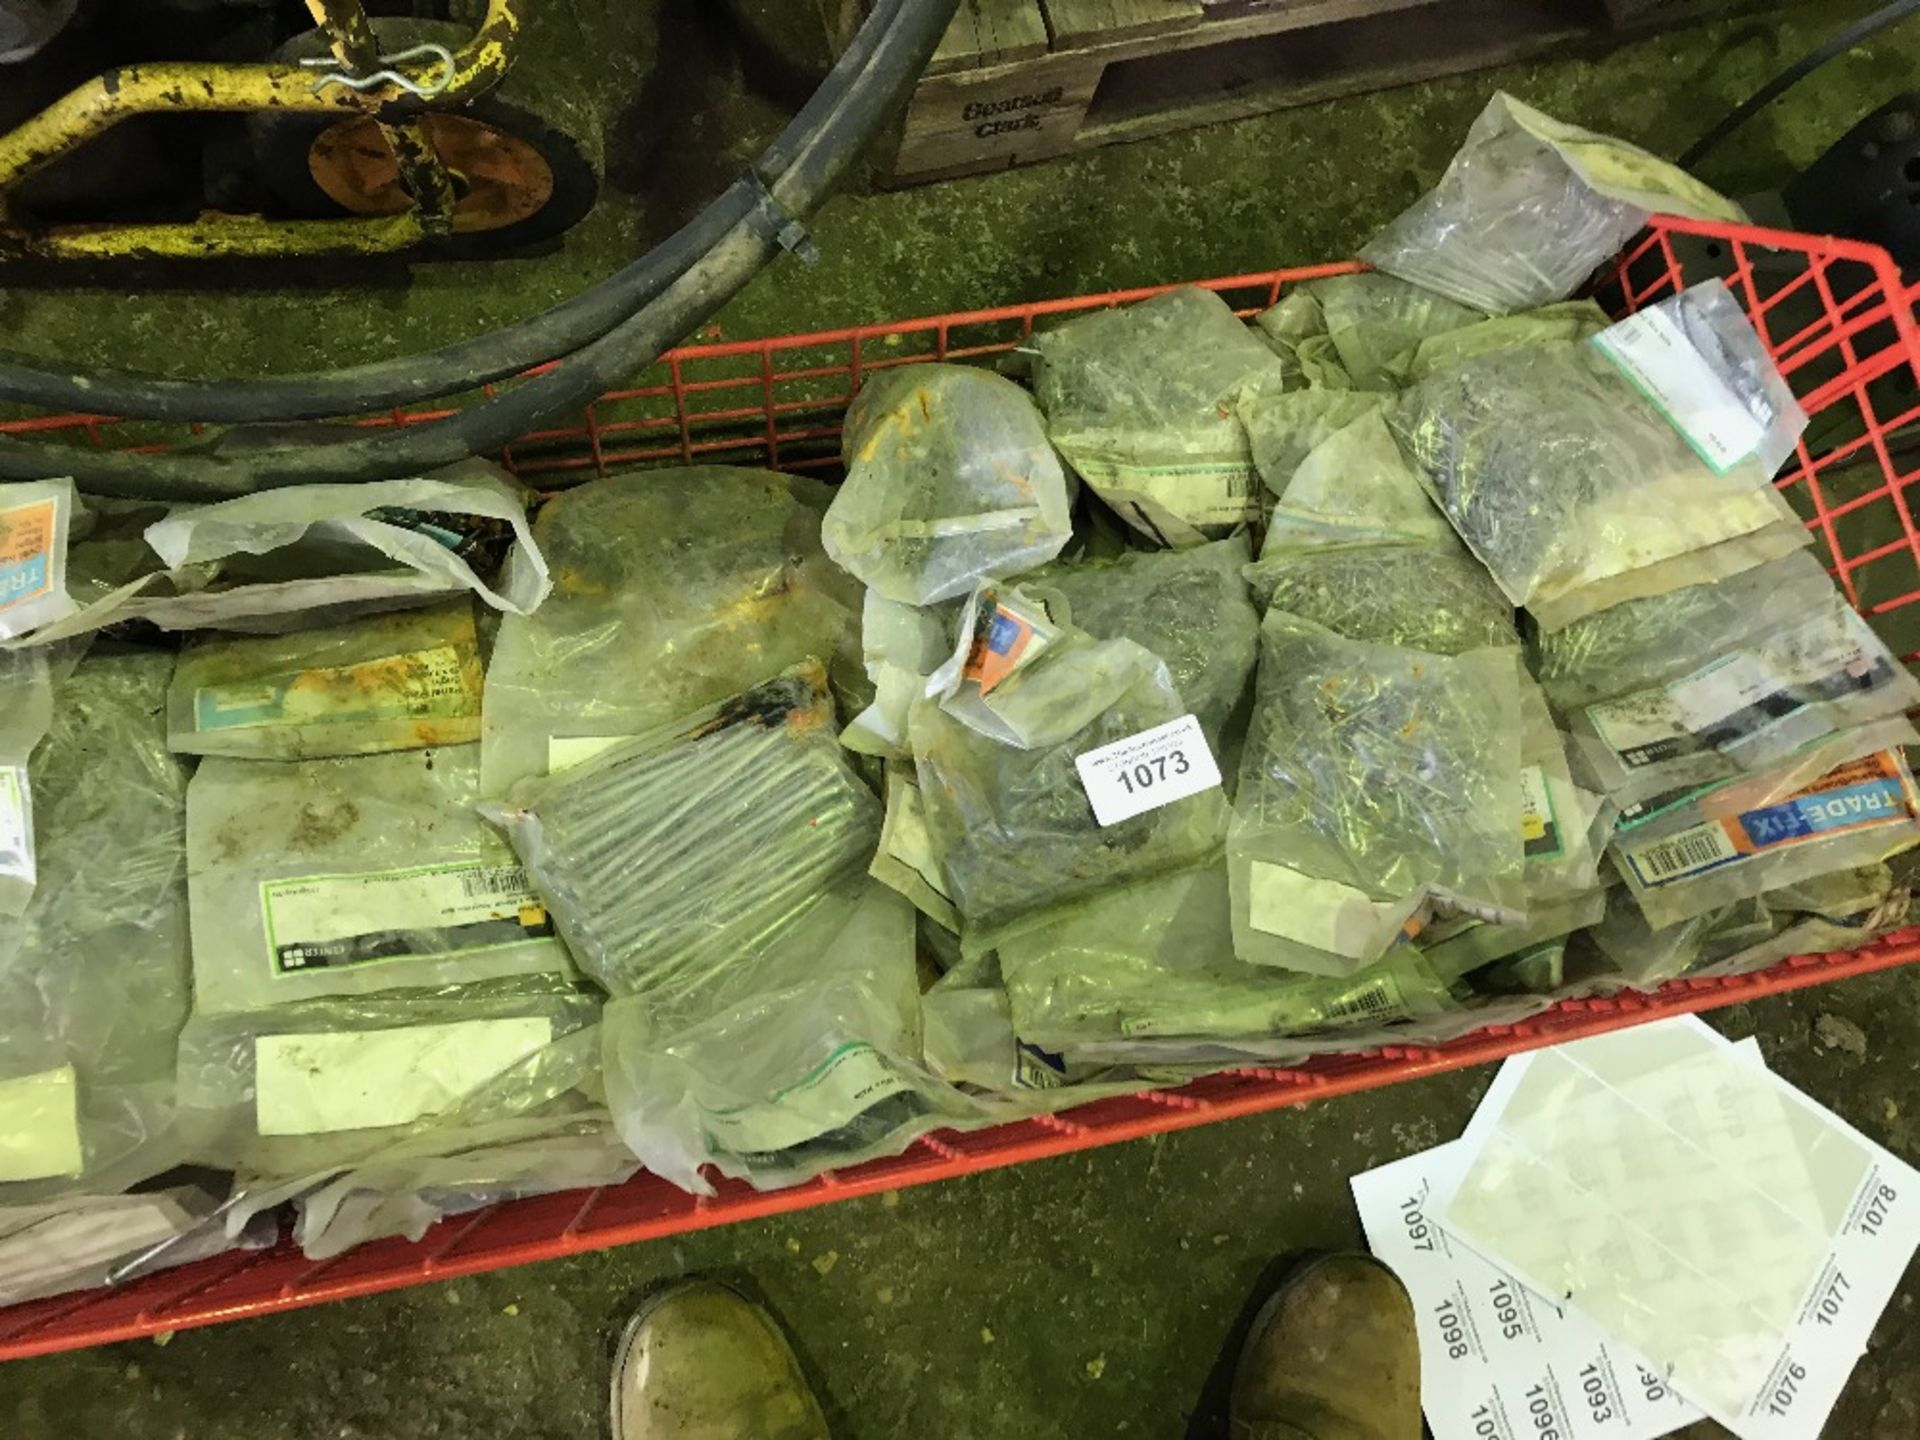 Lot 1073 - Mesh stillage of nails in bags